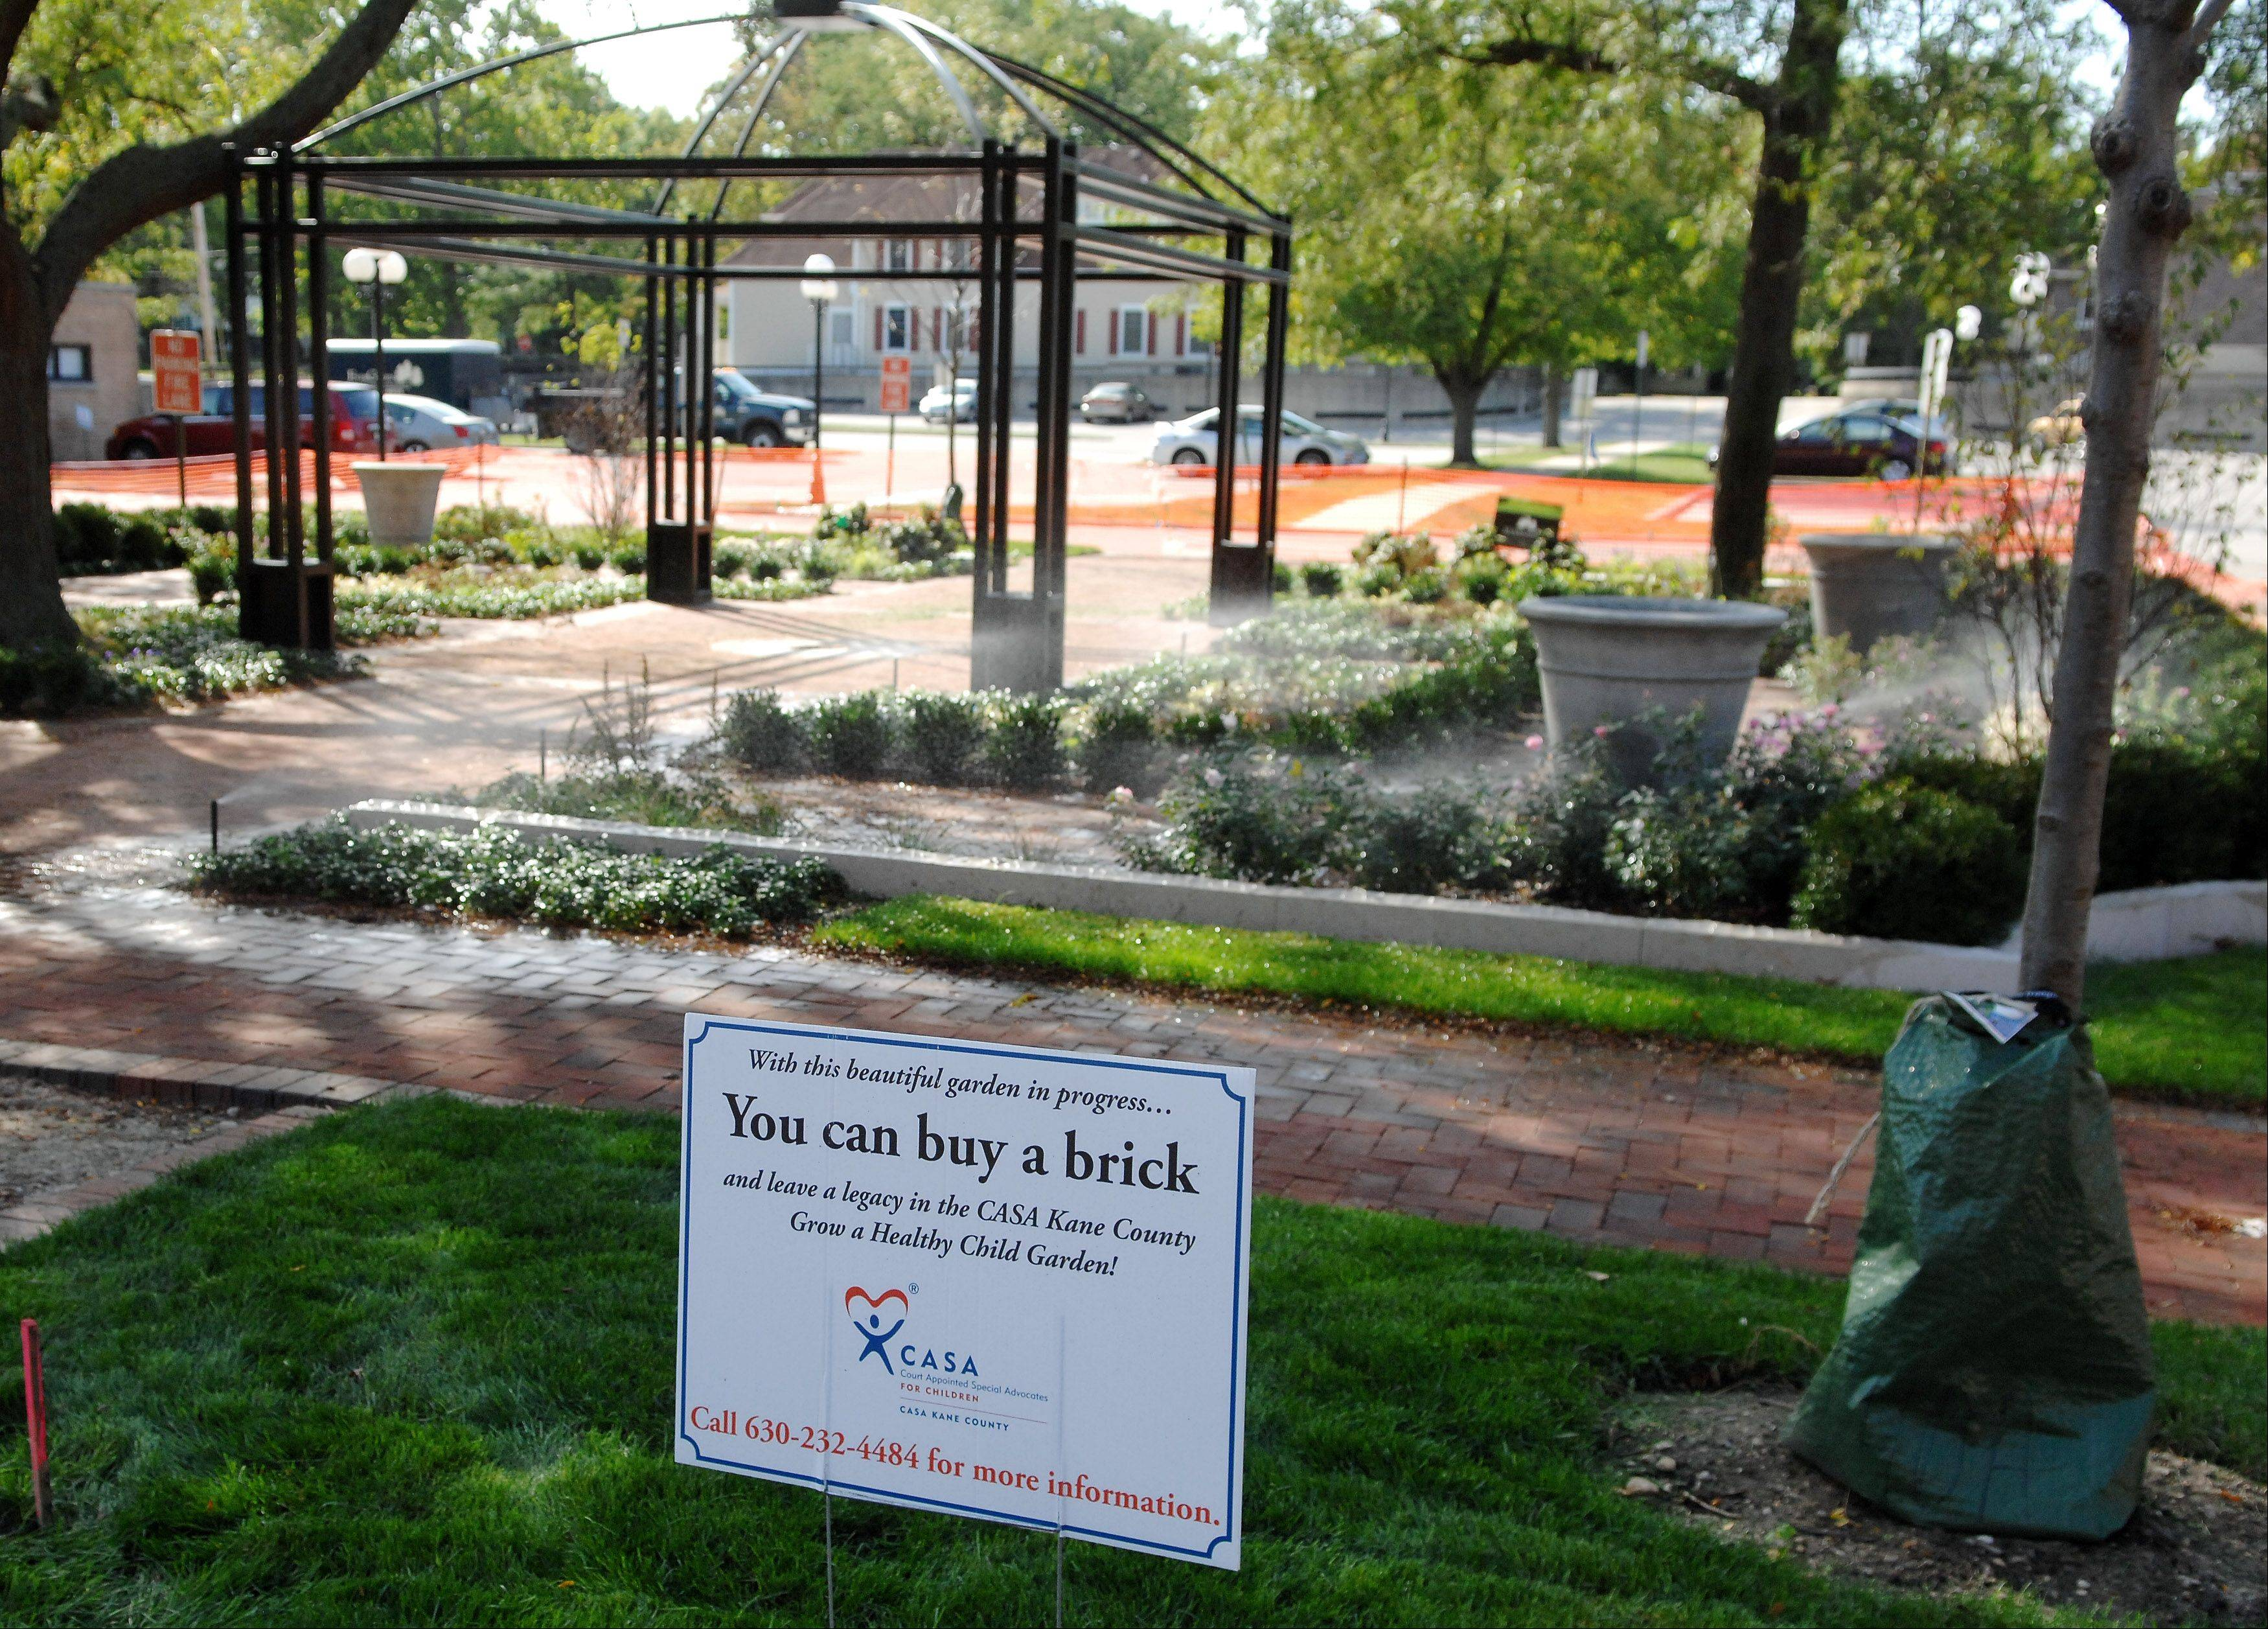 Work is nearly done on the CASA Kane County Healing Garden in downtown Geneva. The group is hoping to raise $1 million for an endowment fund through the garden. The garden is also a place for court personnel and community members to relax.